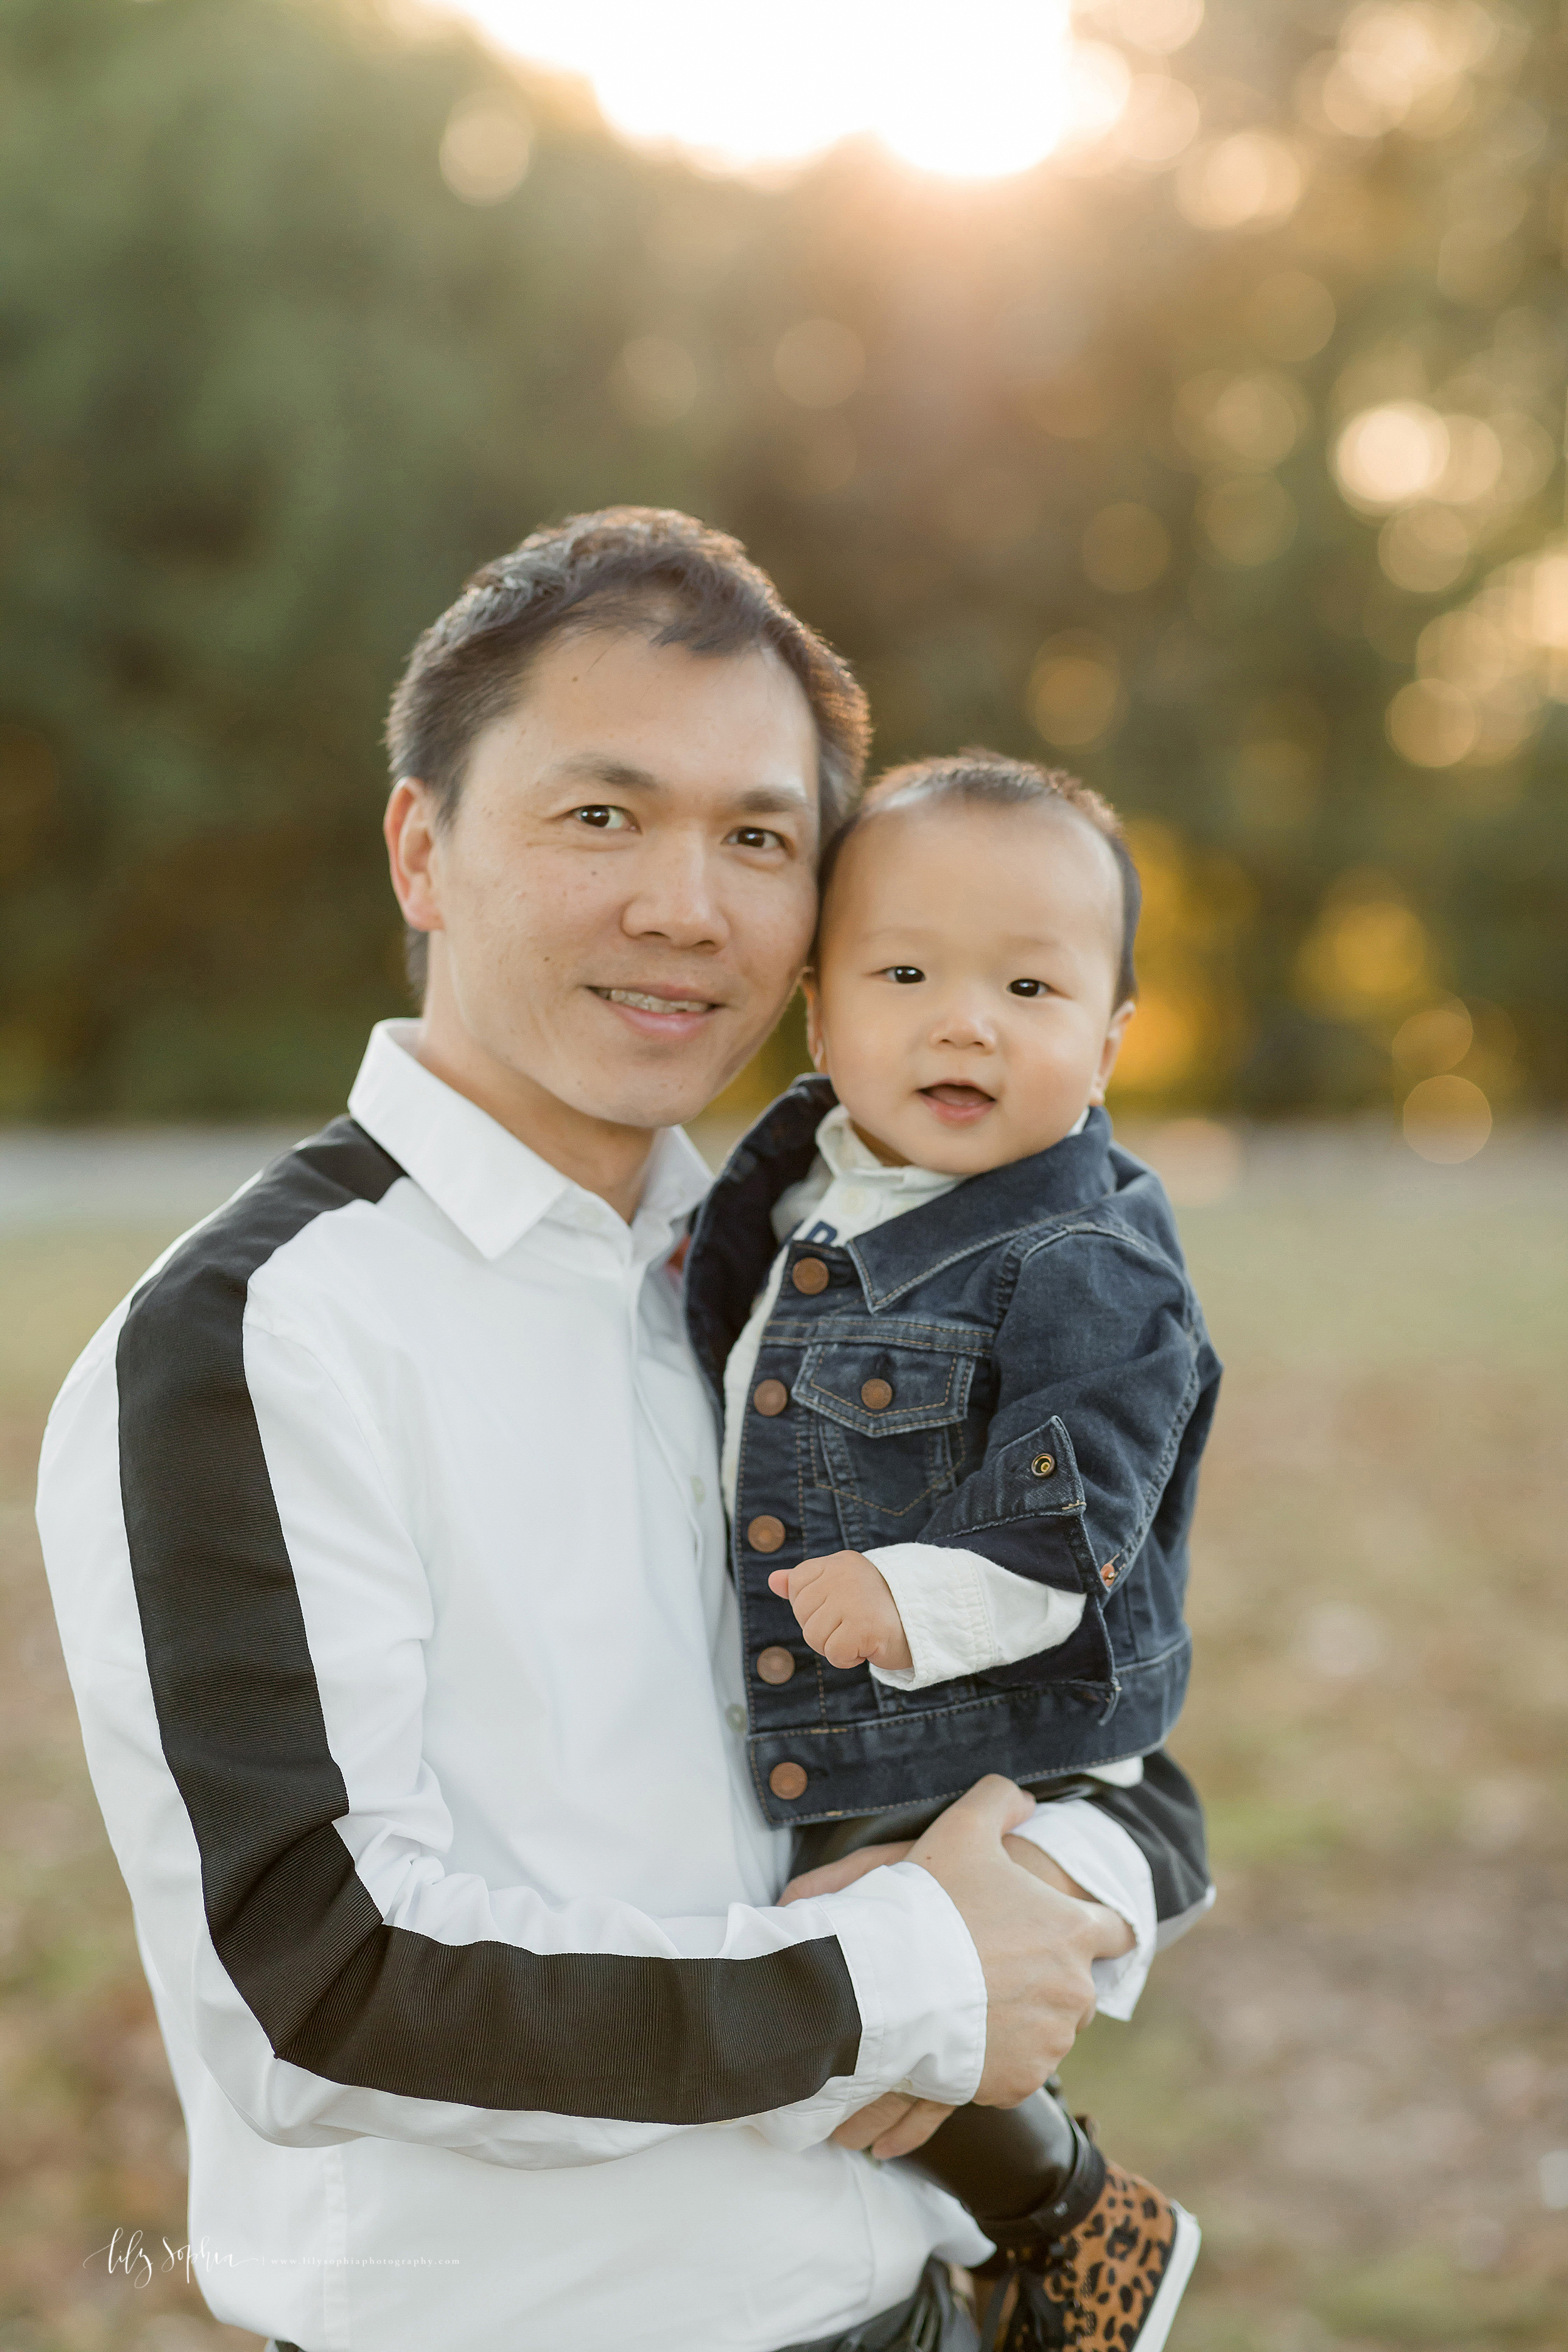 atlanta-buckhead-brookhaven-decatur-lily-sophia-photography--photographer-portraits-grant-park-intown-park-sunset-first-birthday-cake-smash-one-year-old-outdoors-cool-asian-american-family_0082.jpg